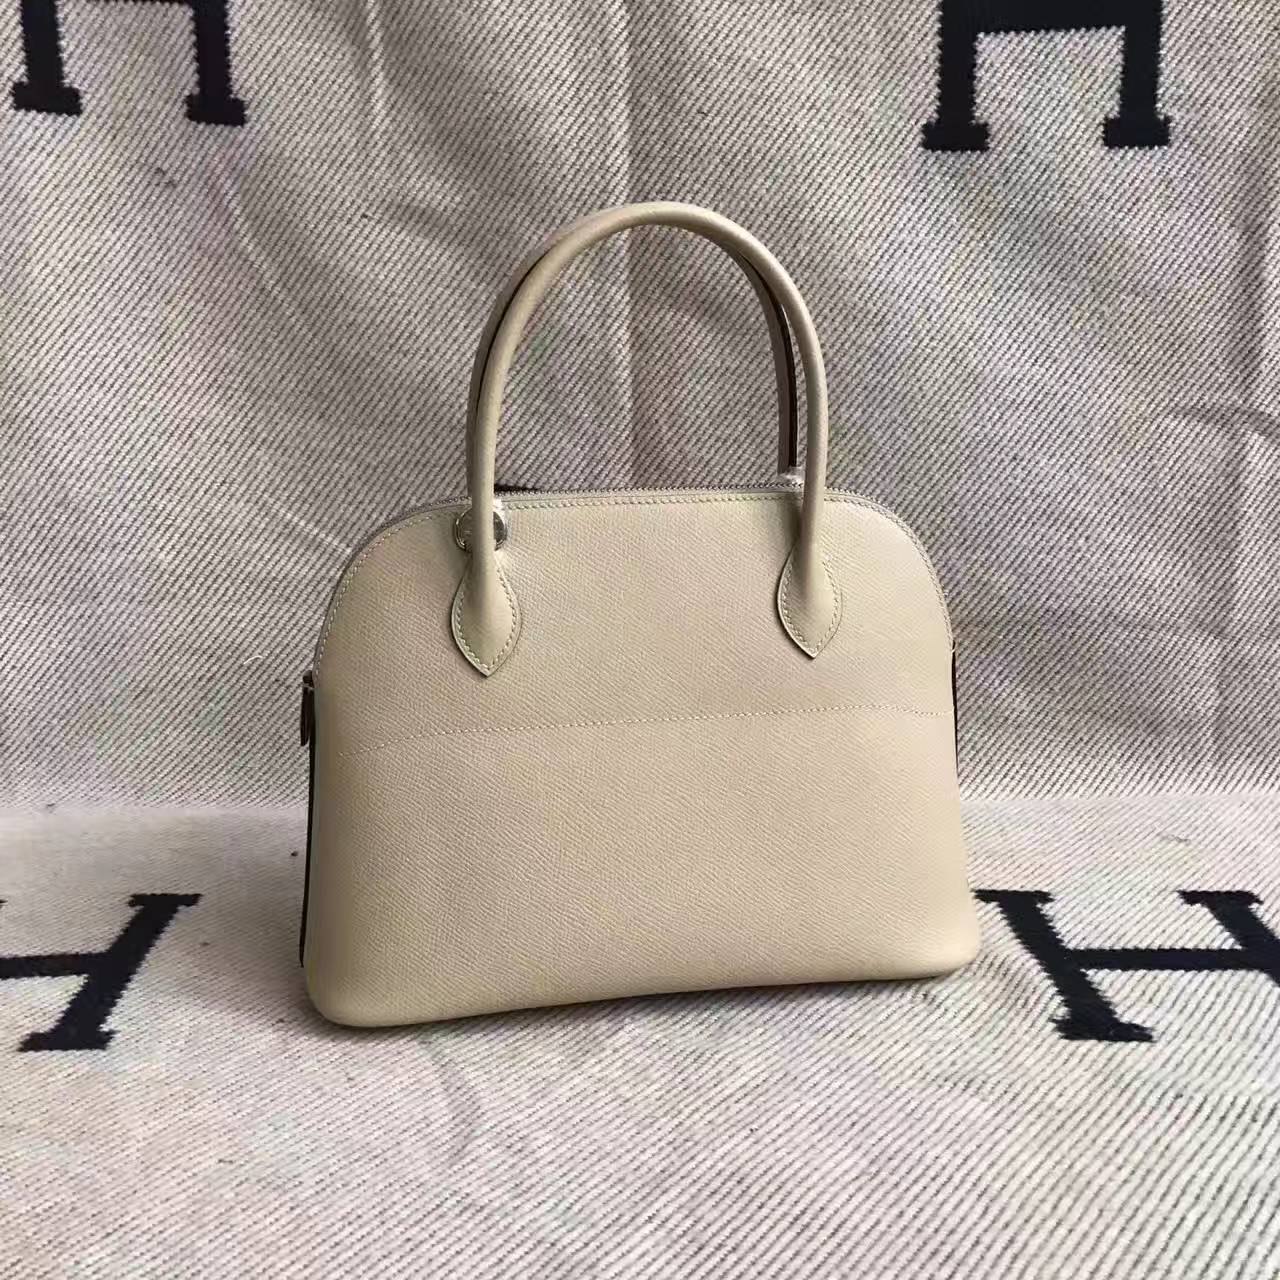 High Quality Hermes Bolide Bag 27cm in  S2 Trench Grey Epsom Leather